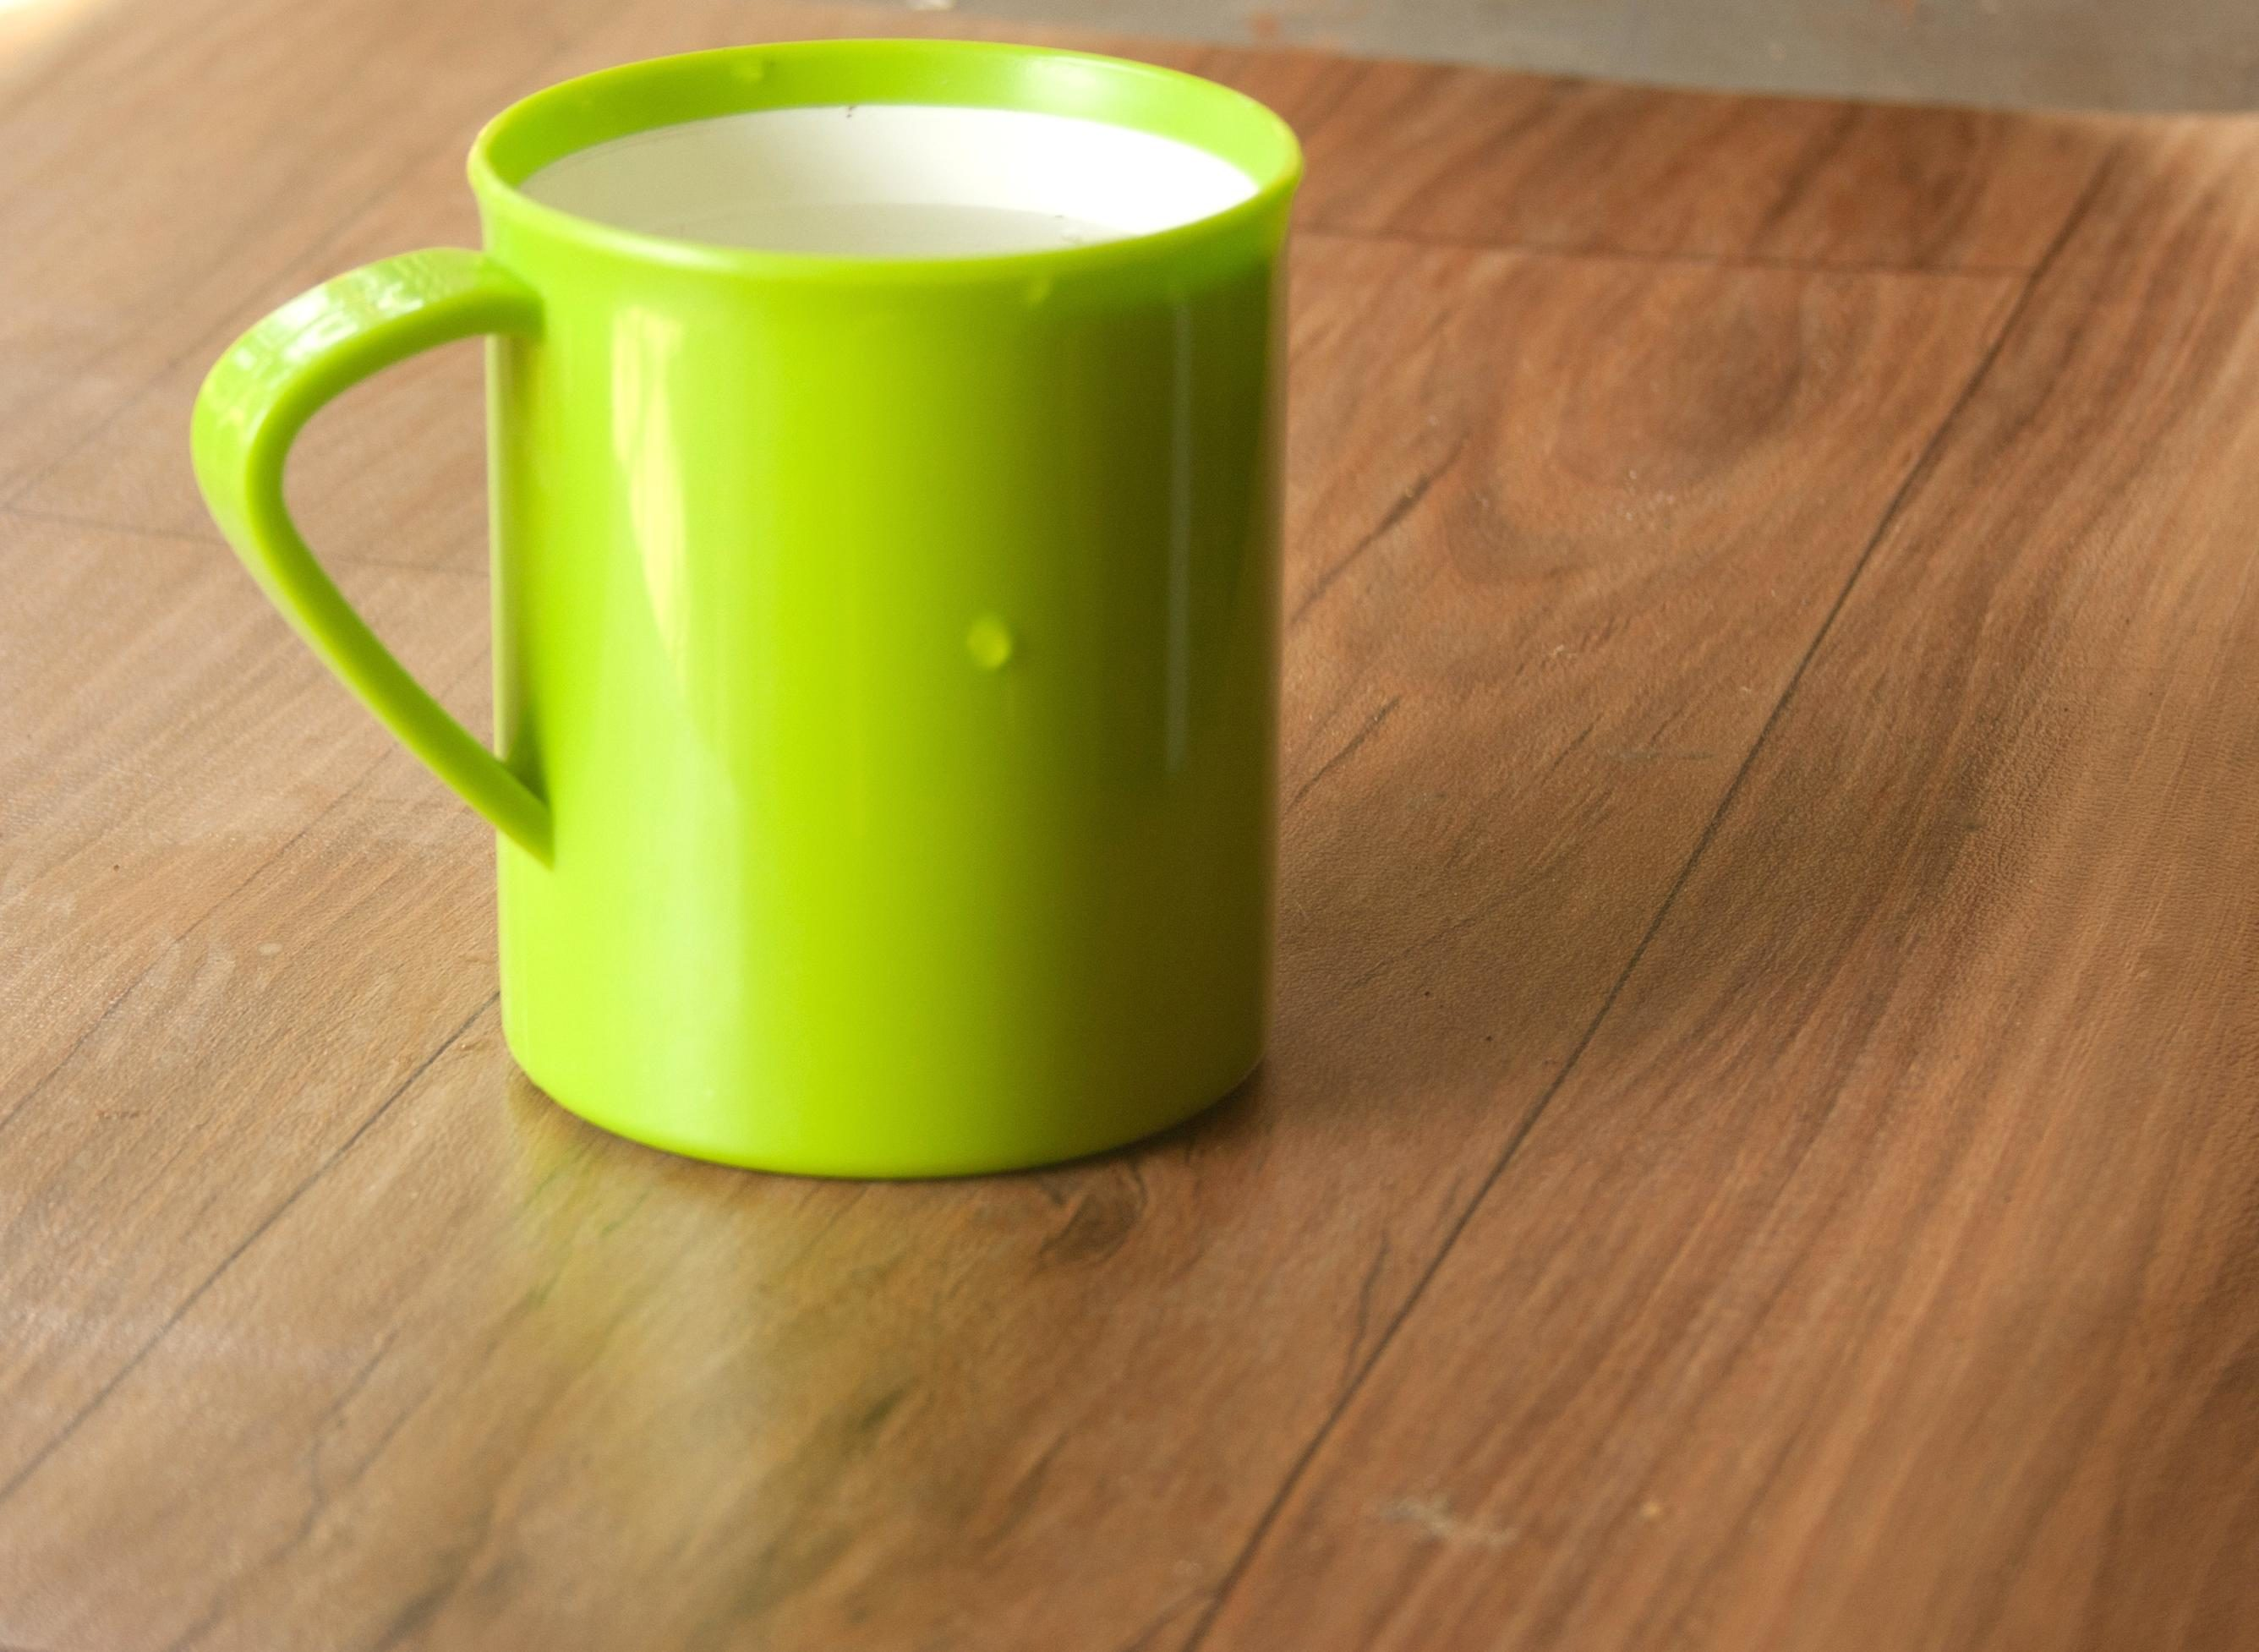 Free picture: green mug table object cup